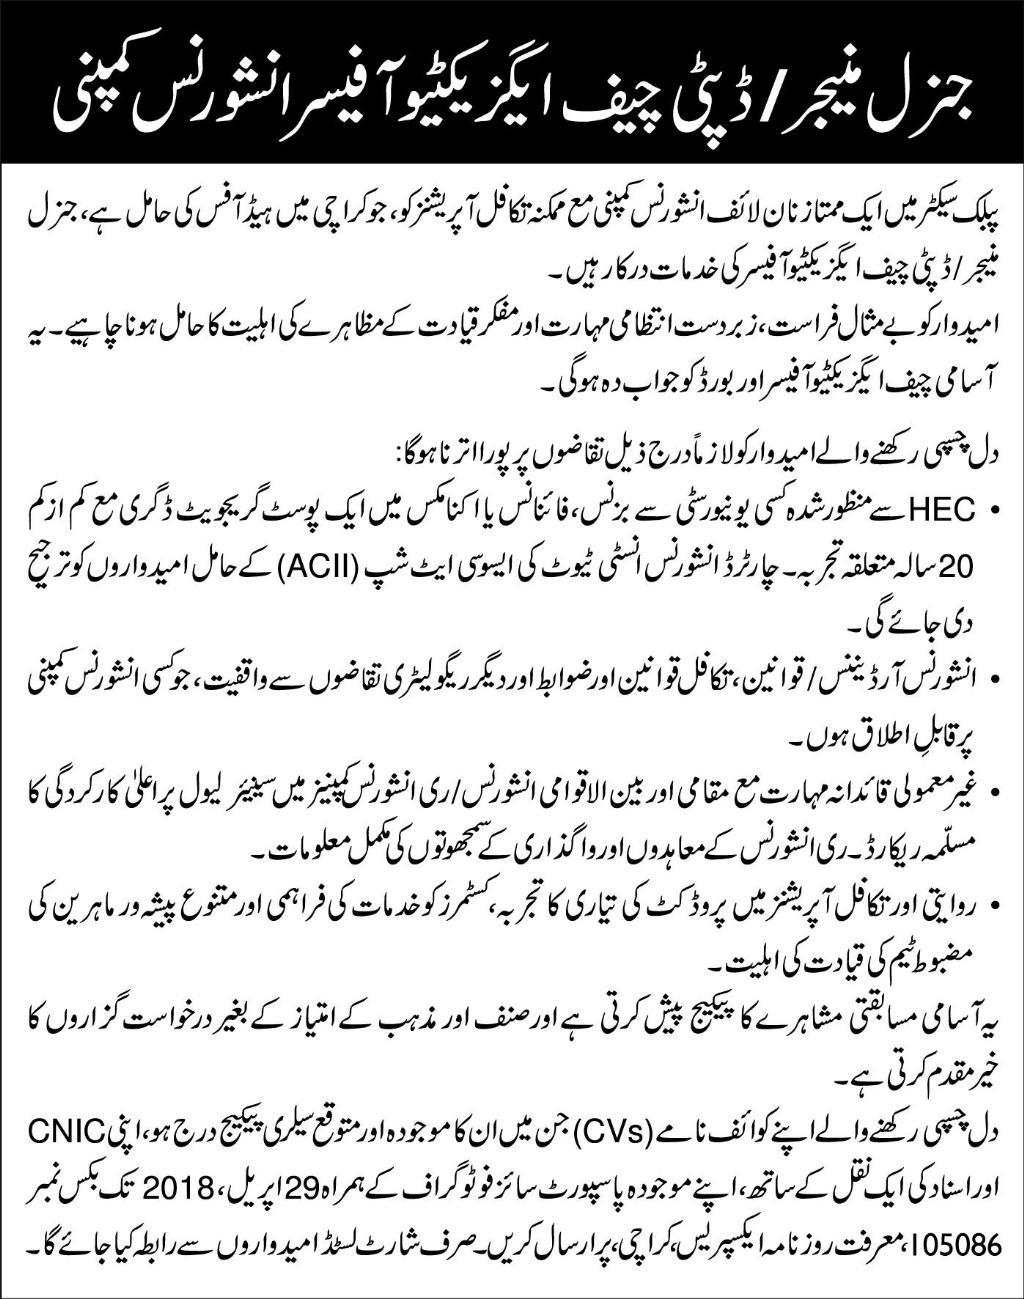 Public Sector Organization General Manager Jobs